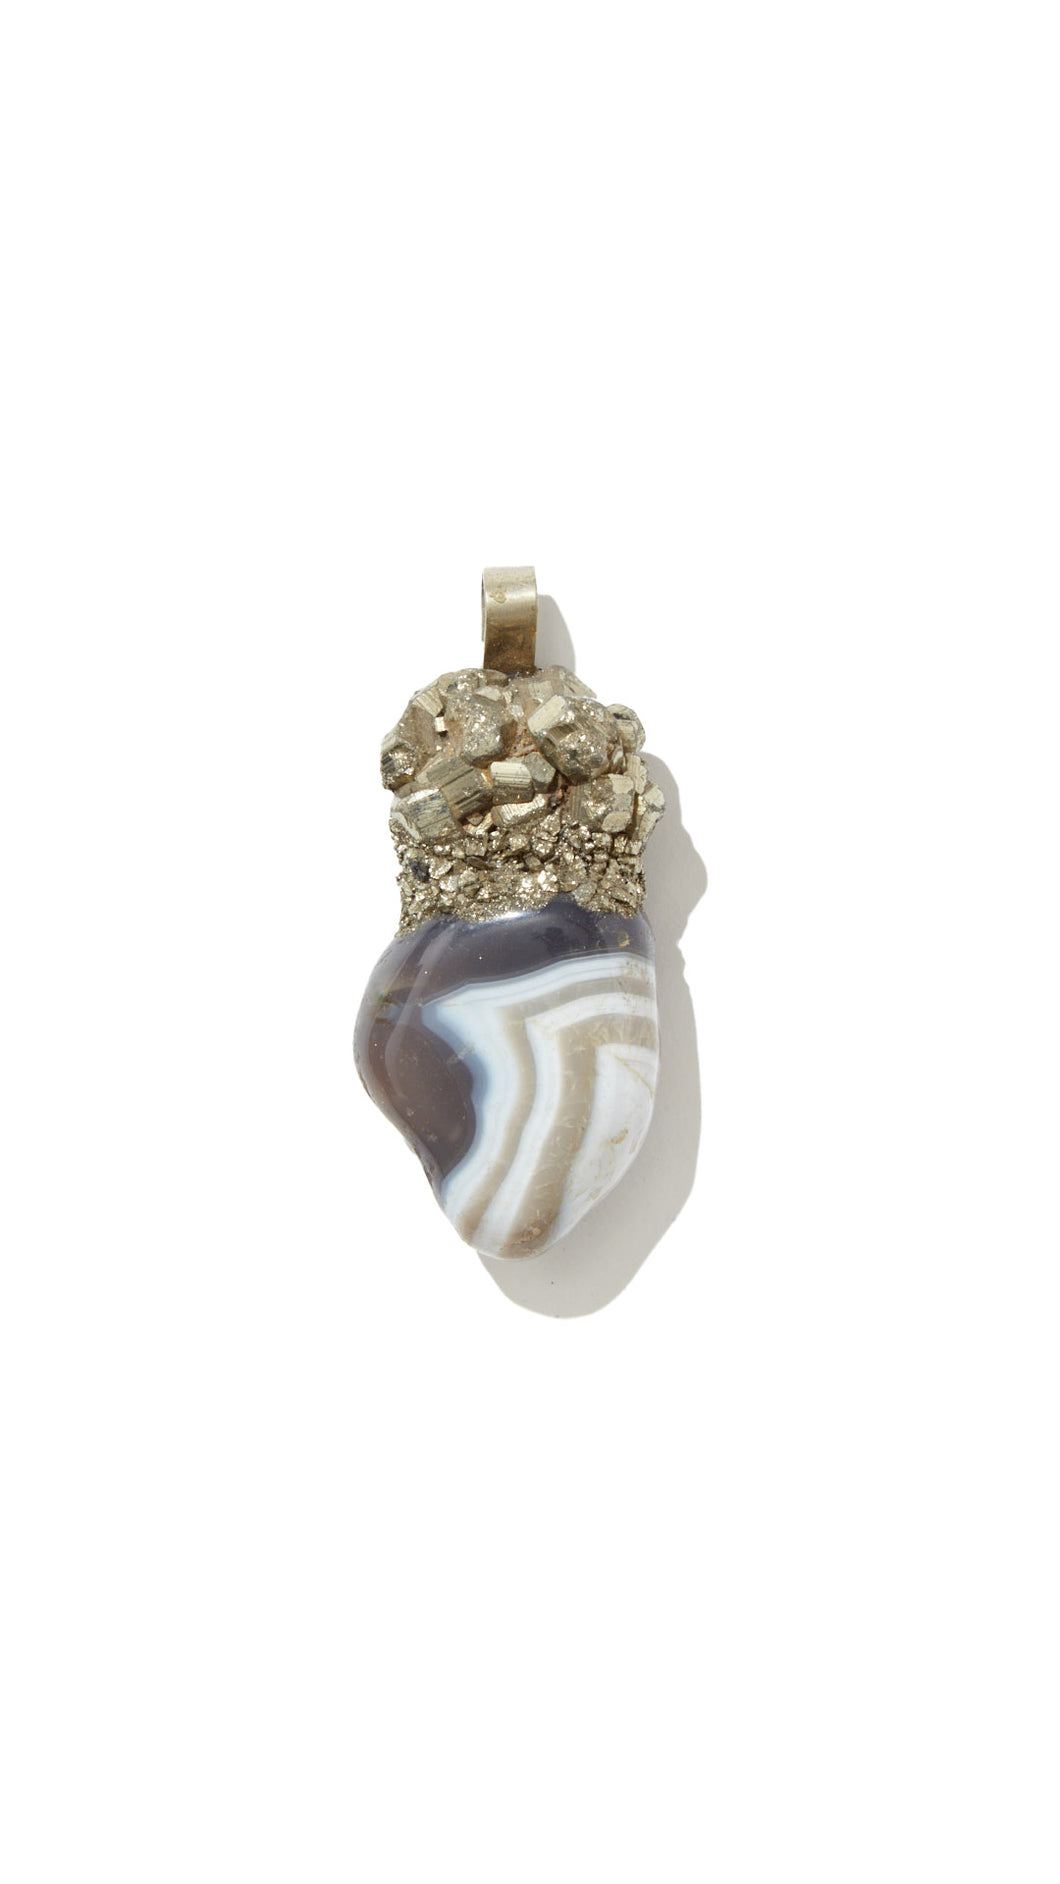 Agate Necklace - Siembra Heritage